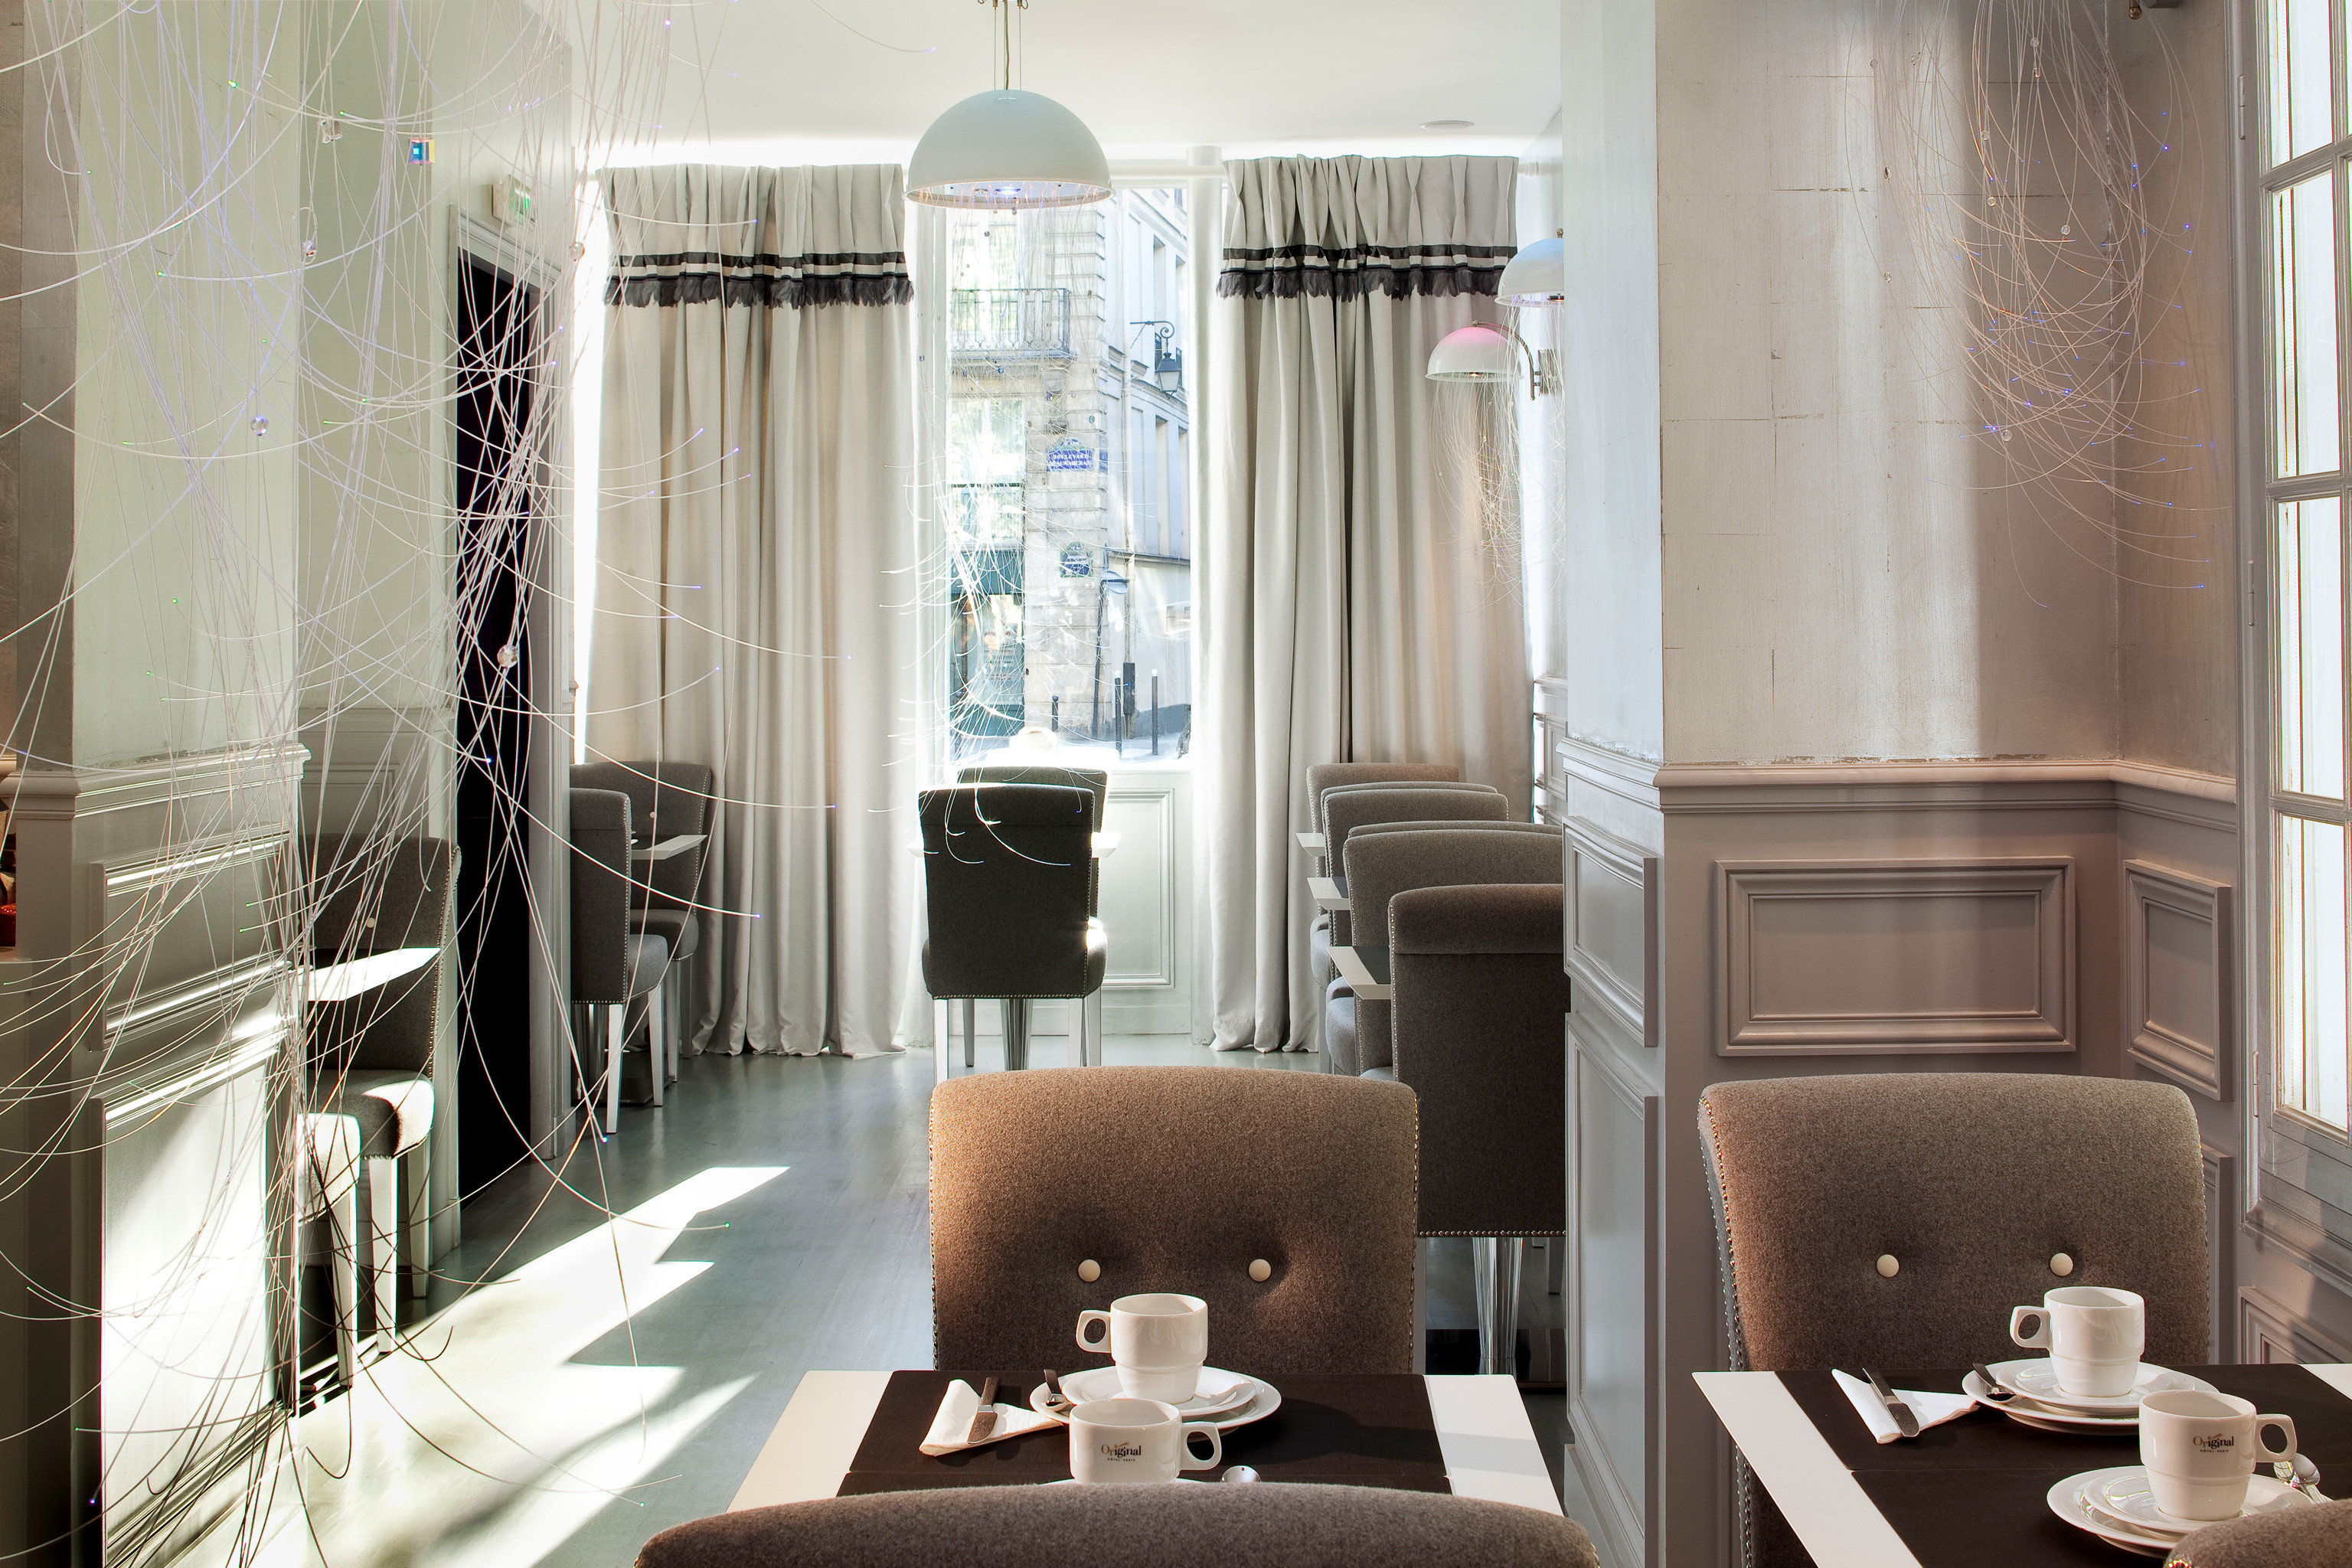 Boutique City Dining Drink Eat Hip Historic property curtain home living room Suite textile window treatment